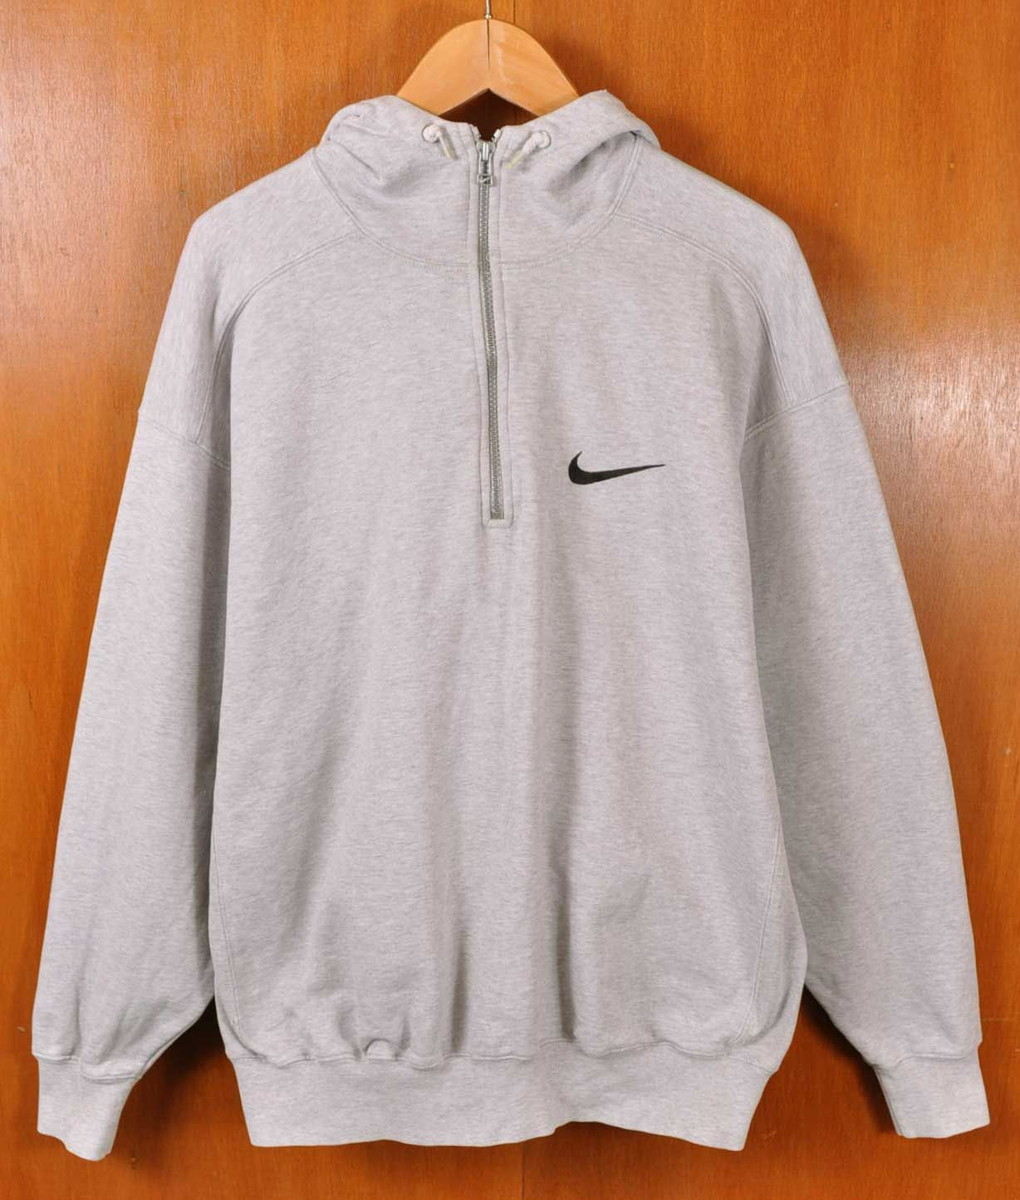 05147a42a03d41 Vintage 1990s NIKE Nike pullover half zip sweat shirt parka marbled beef  gray one point embroidery men L equivalency▽